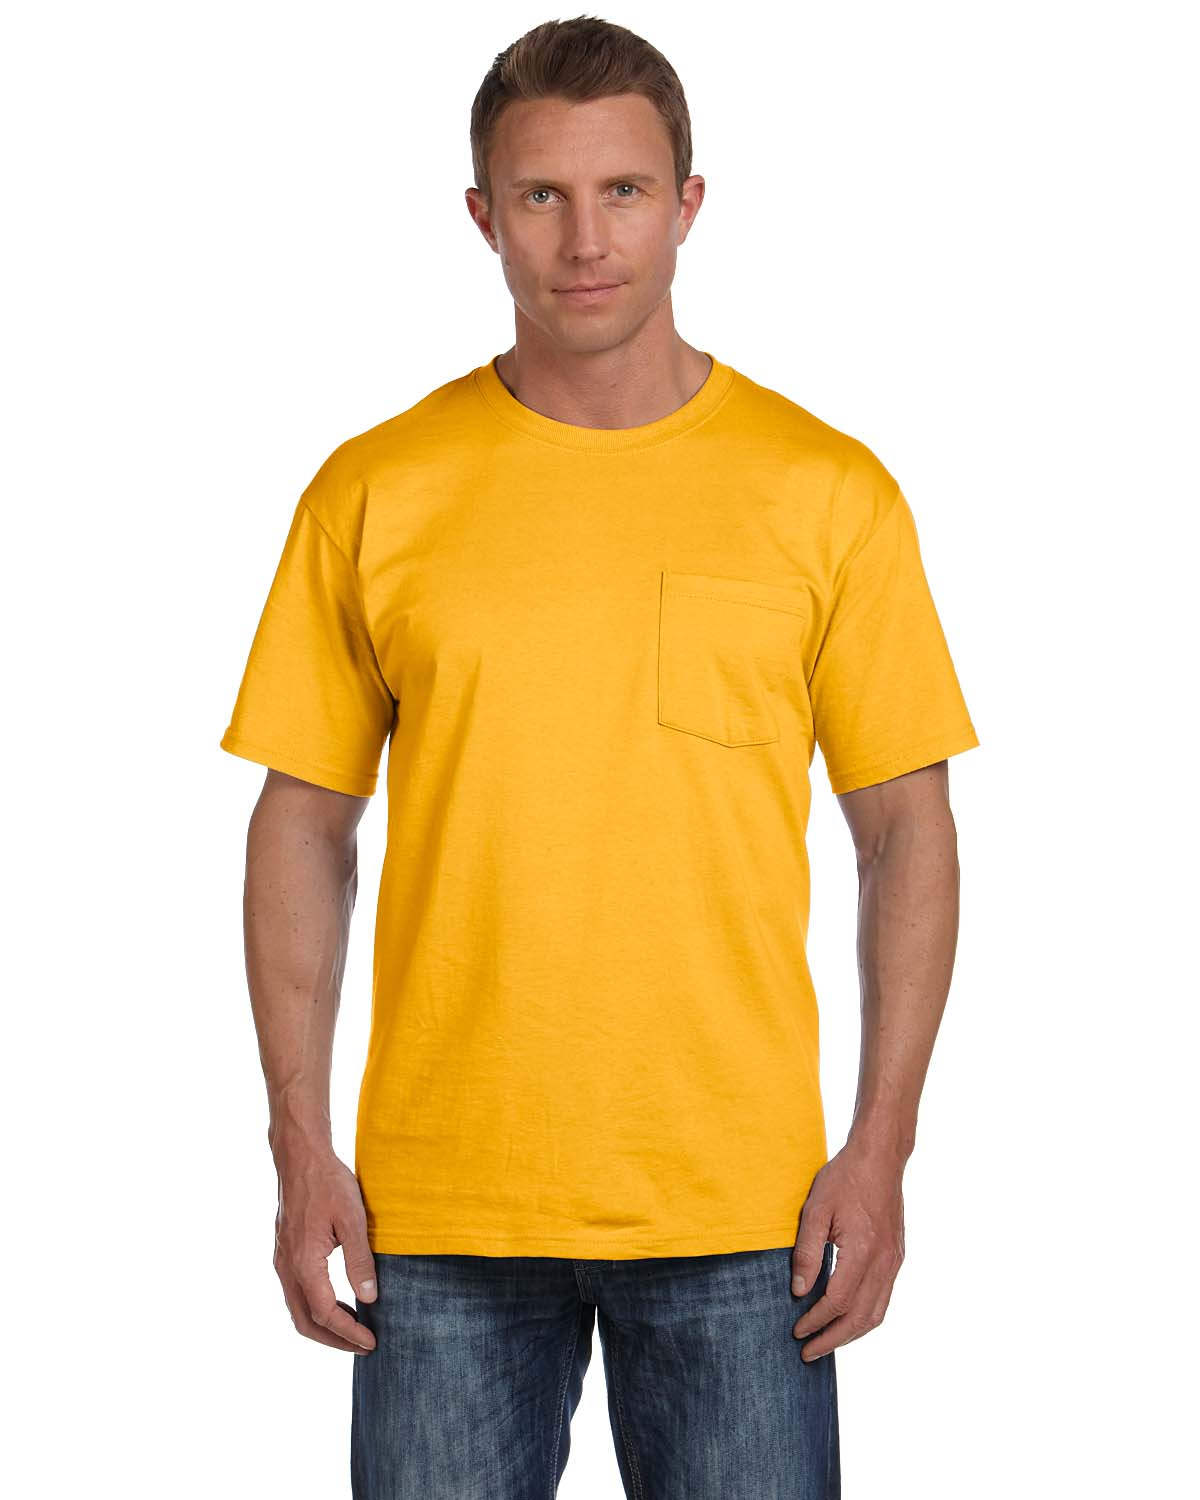 6bd939a2 Fruit of the Loom-5 oz- 100% Heavy Cotton HD Pocket T-Shirt -3931P|ClothingnApparel